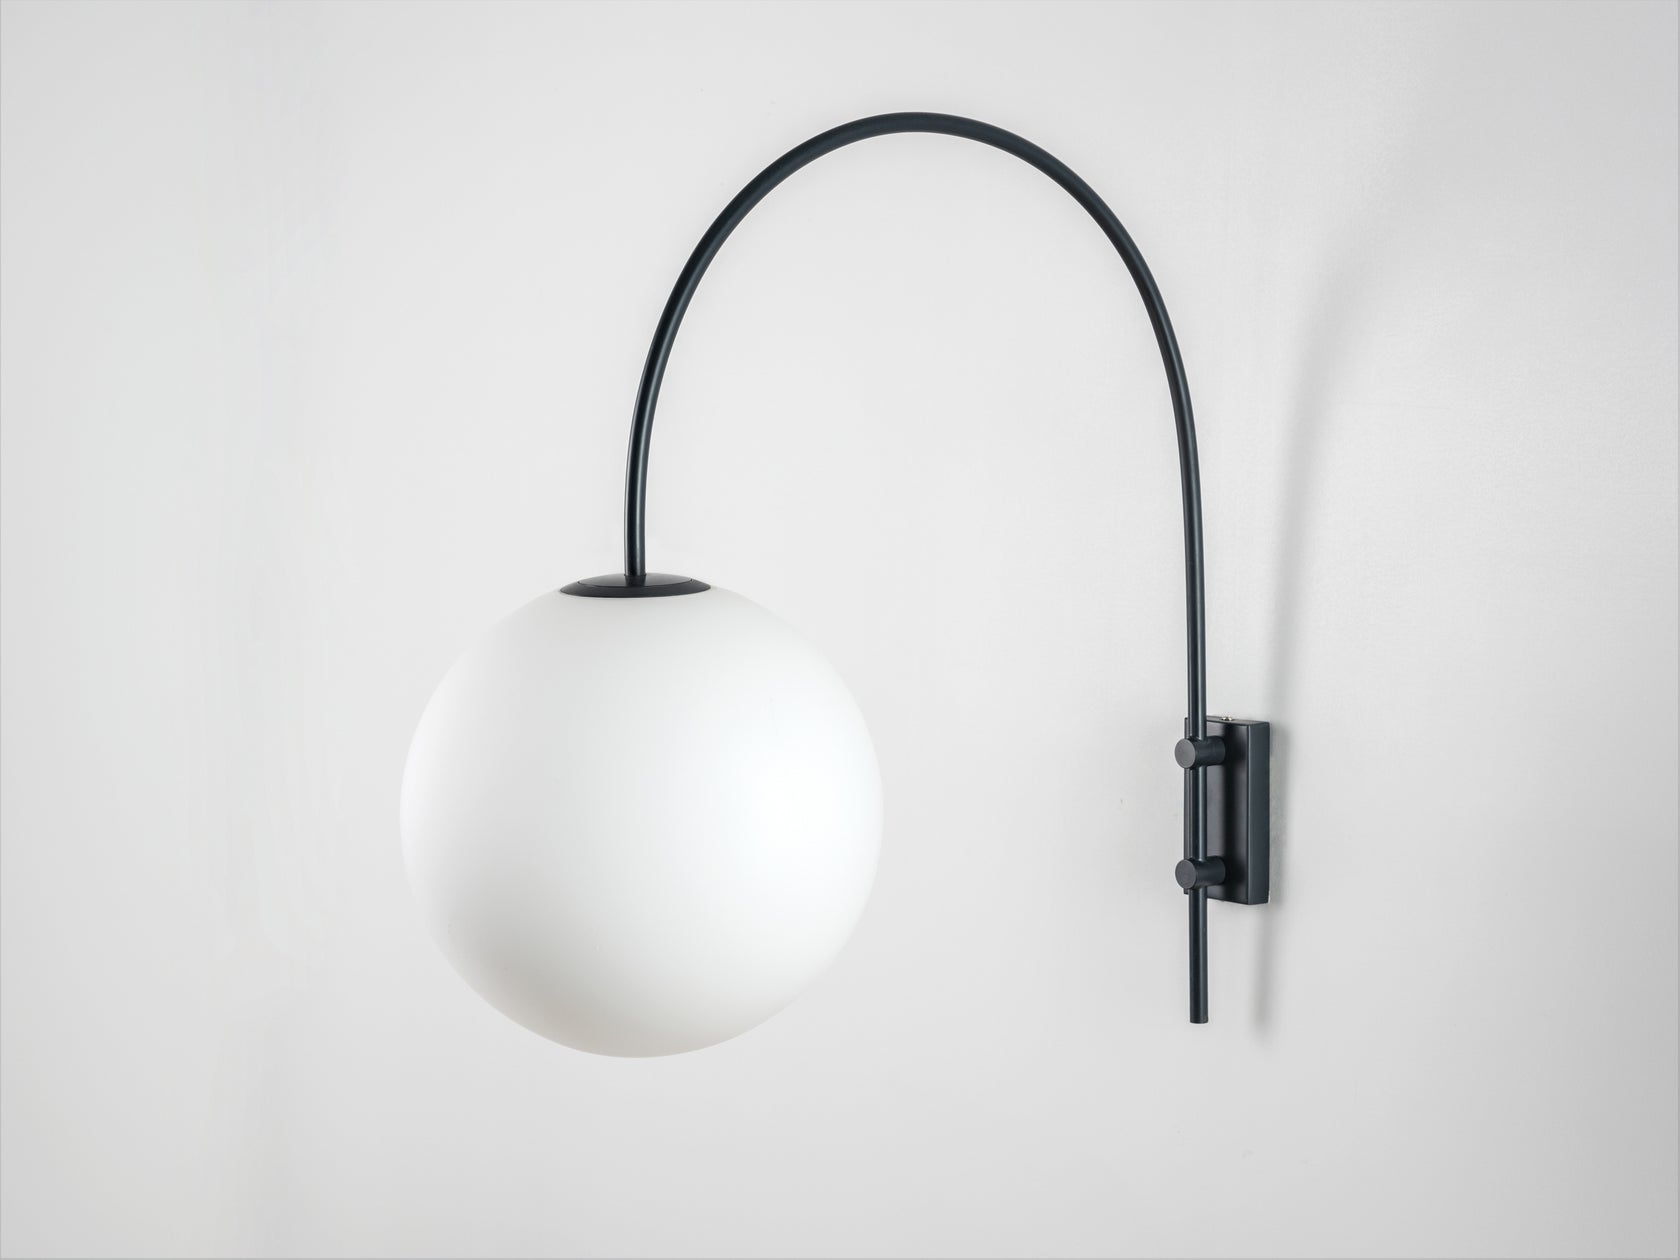 Curve wall light grey | off | houseof.com